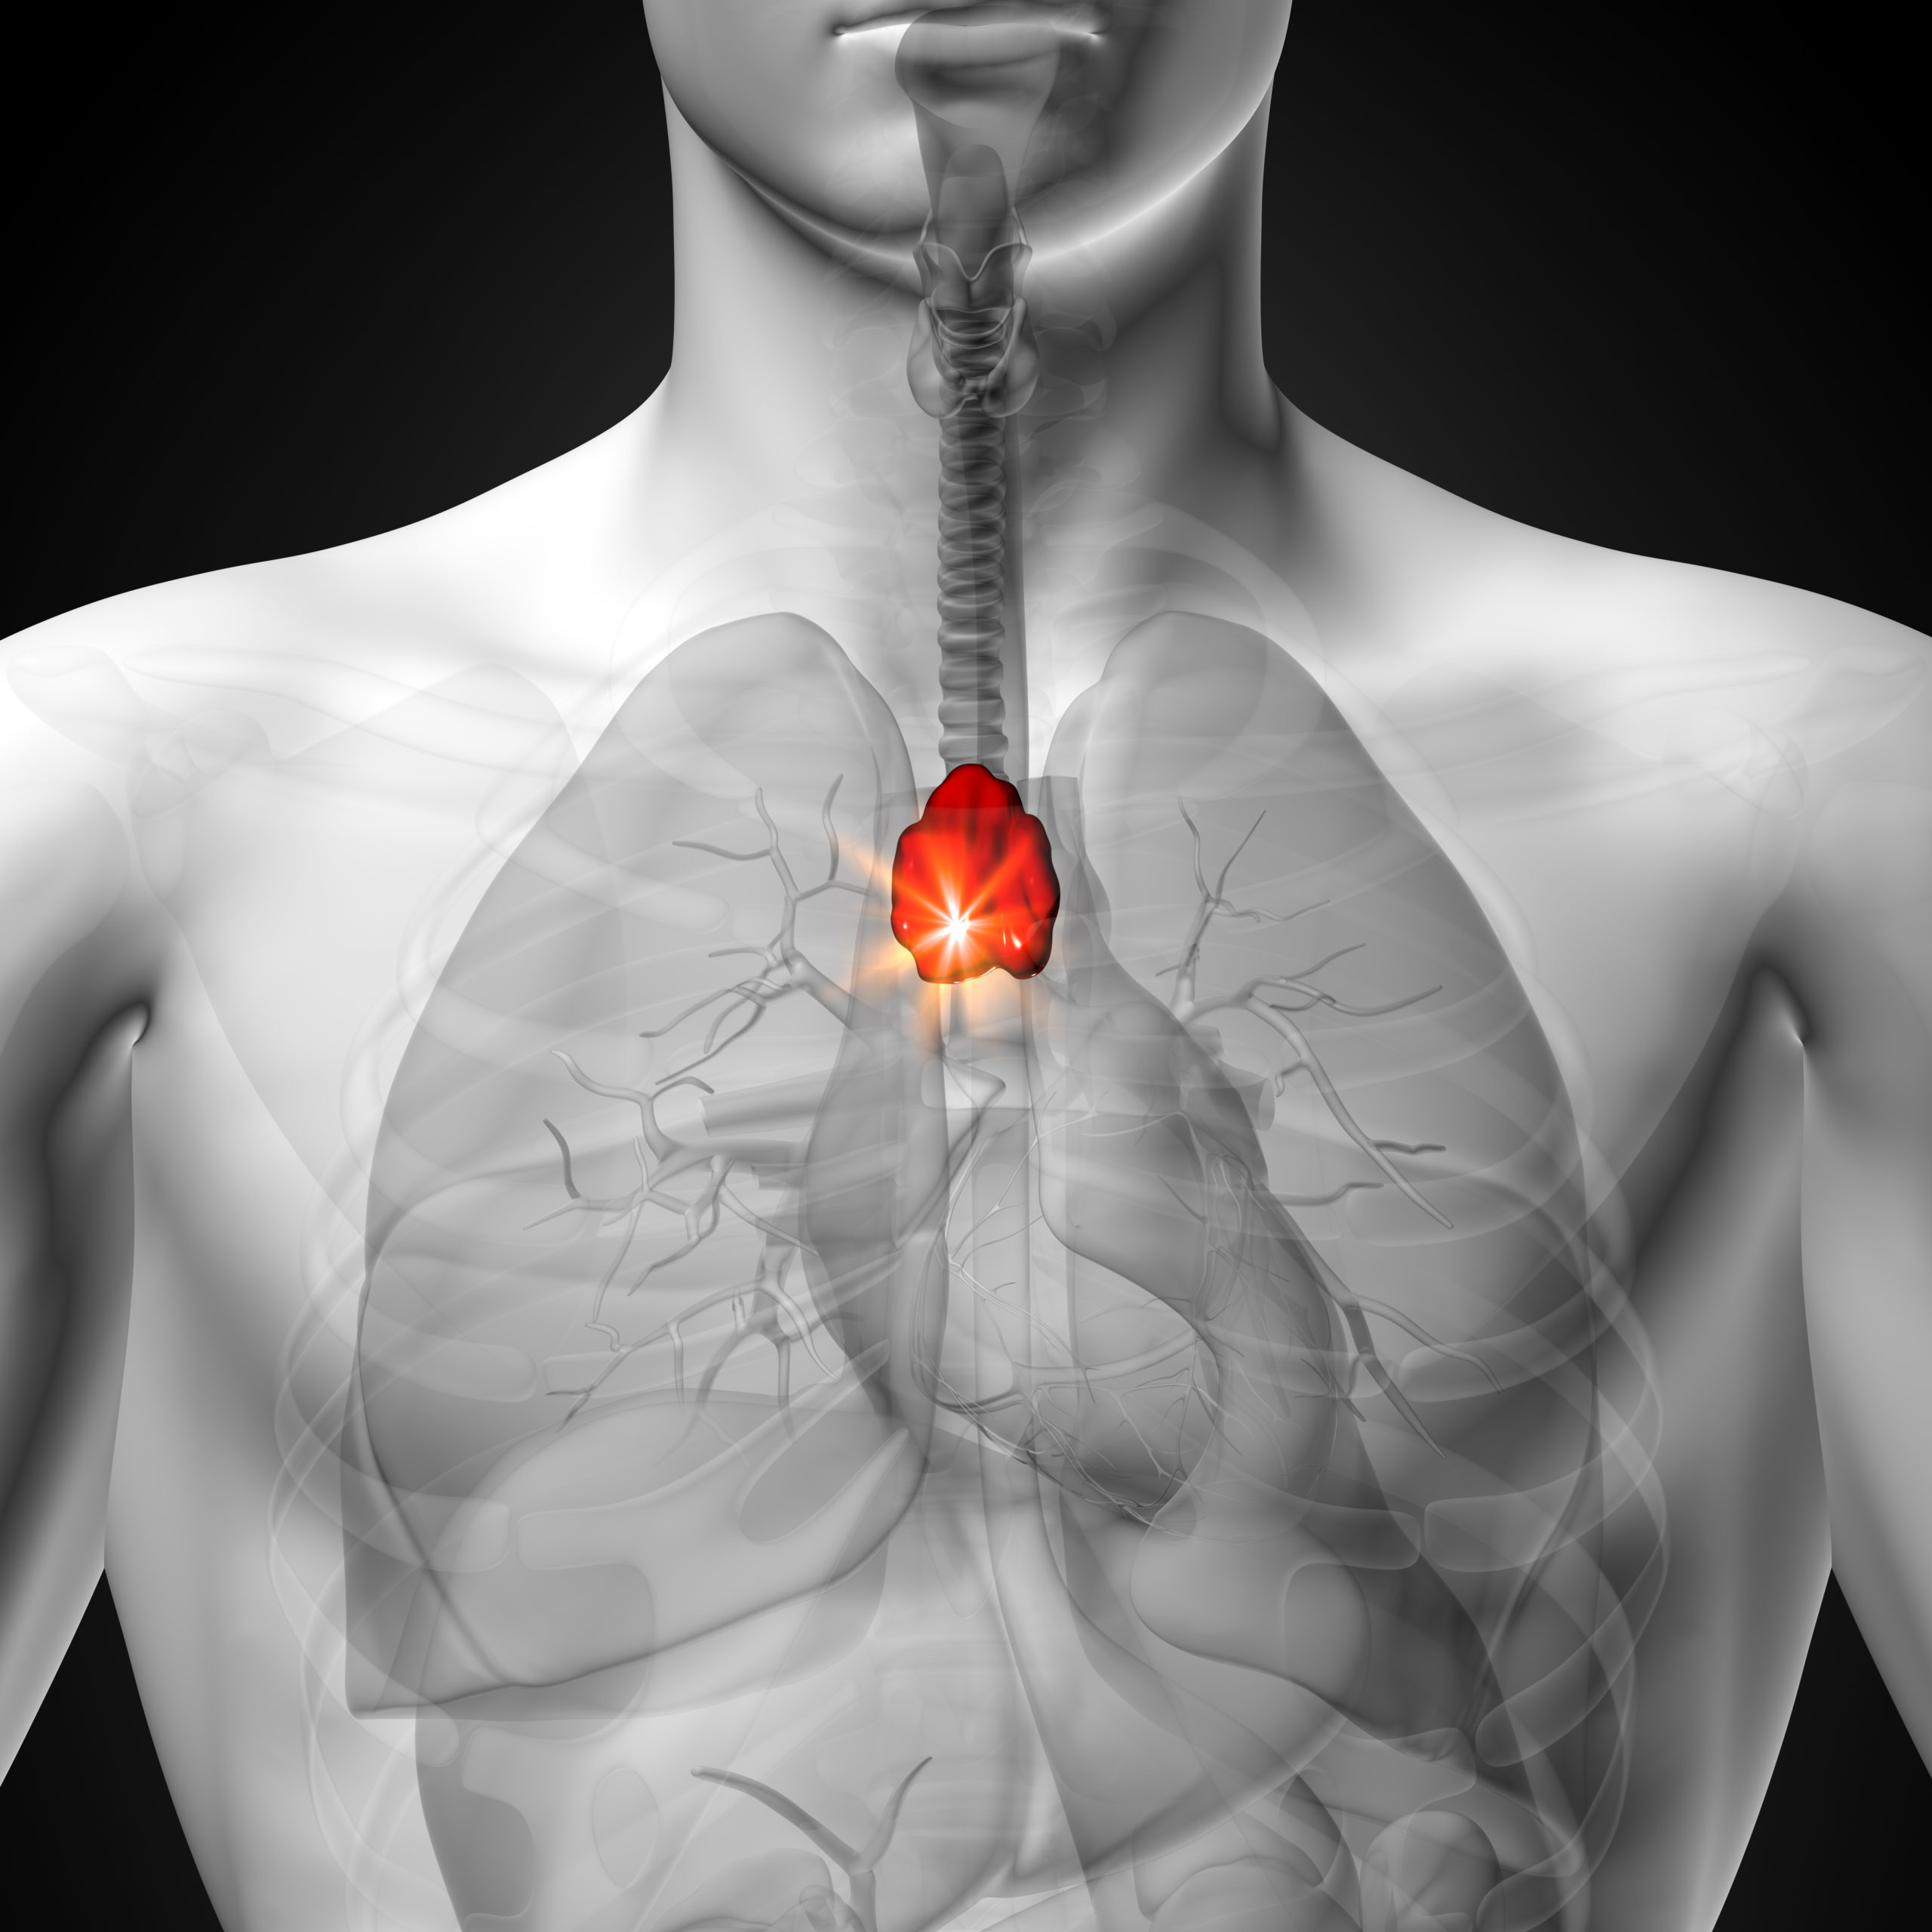 Image of the inside of a human with a highlighted red lump above the heart